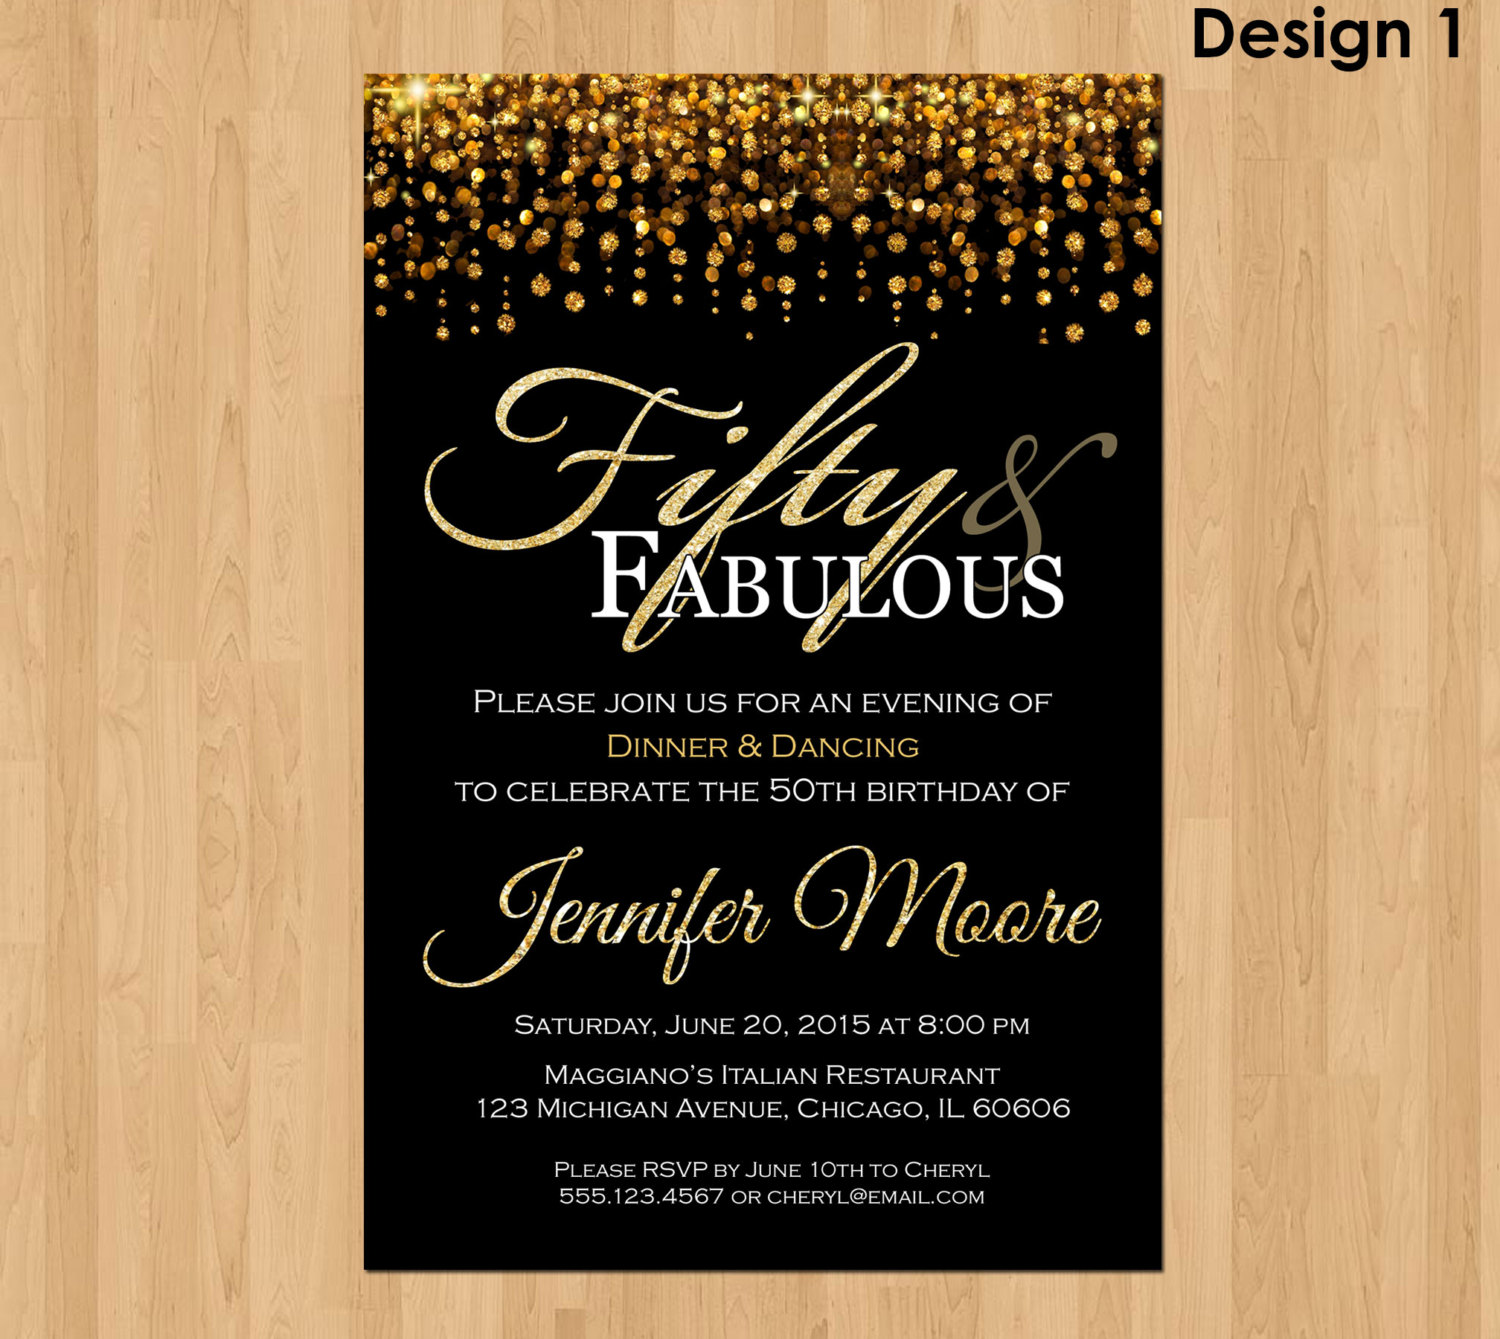 50th birthday invitation card designs ; 50Th-Birthday-Invitation-for-a-delightful-birthday-Invitation-design-with-delightful-layout-1